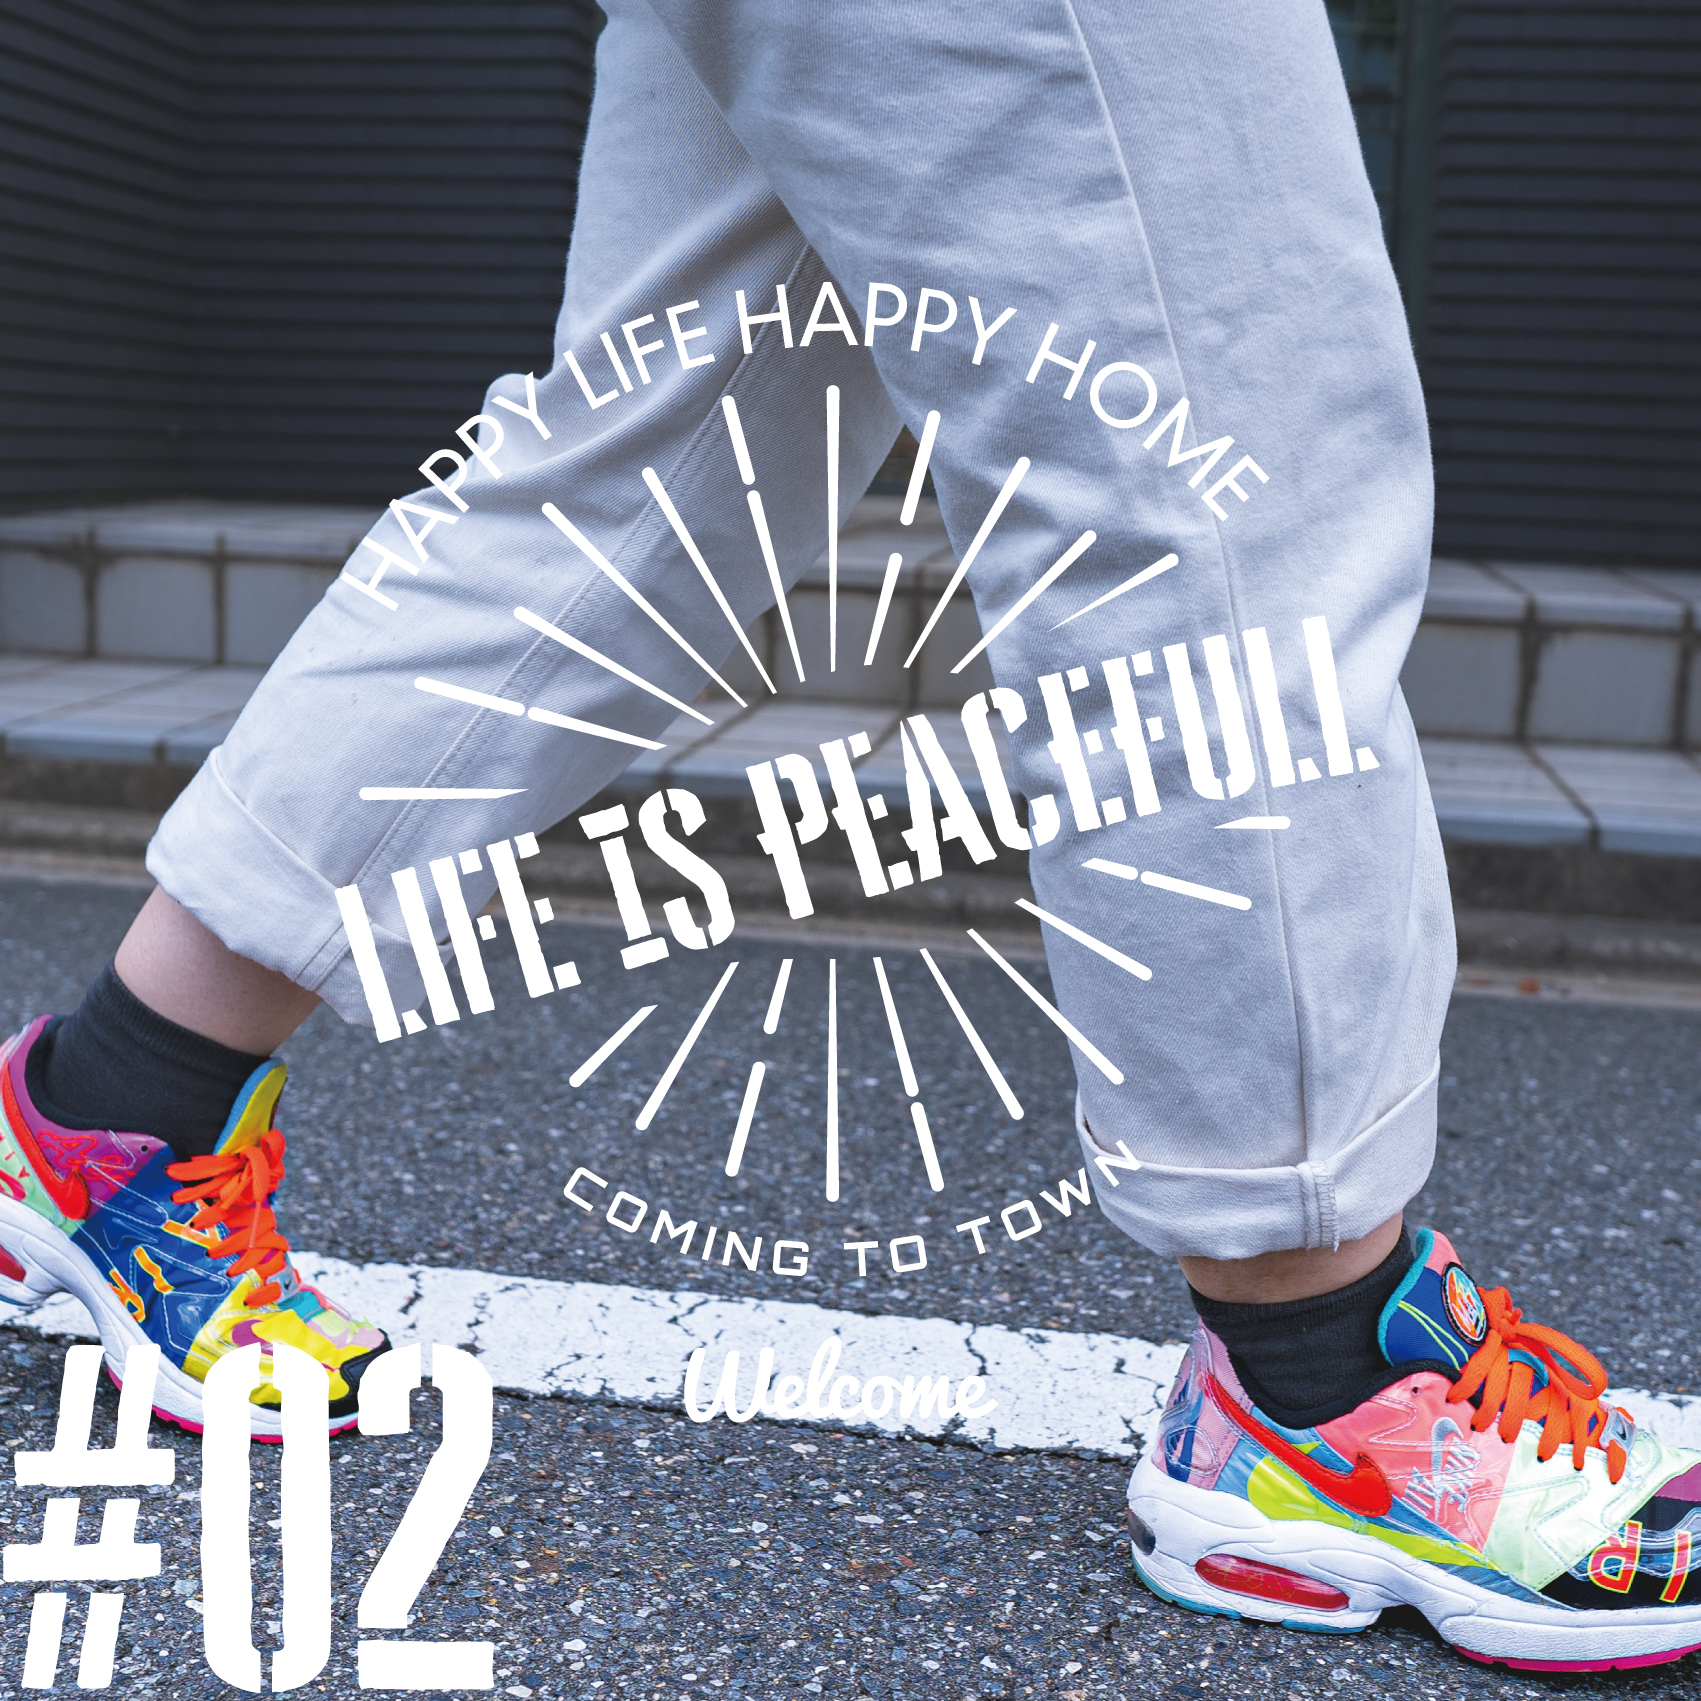 Life is Peacefull 02